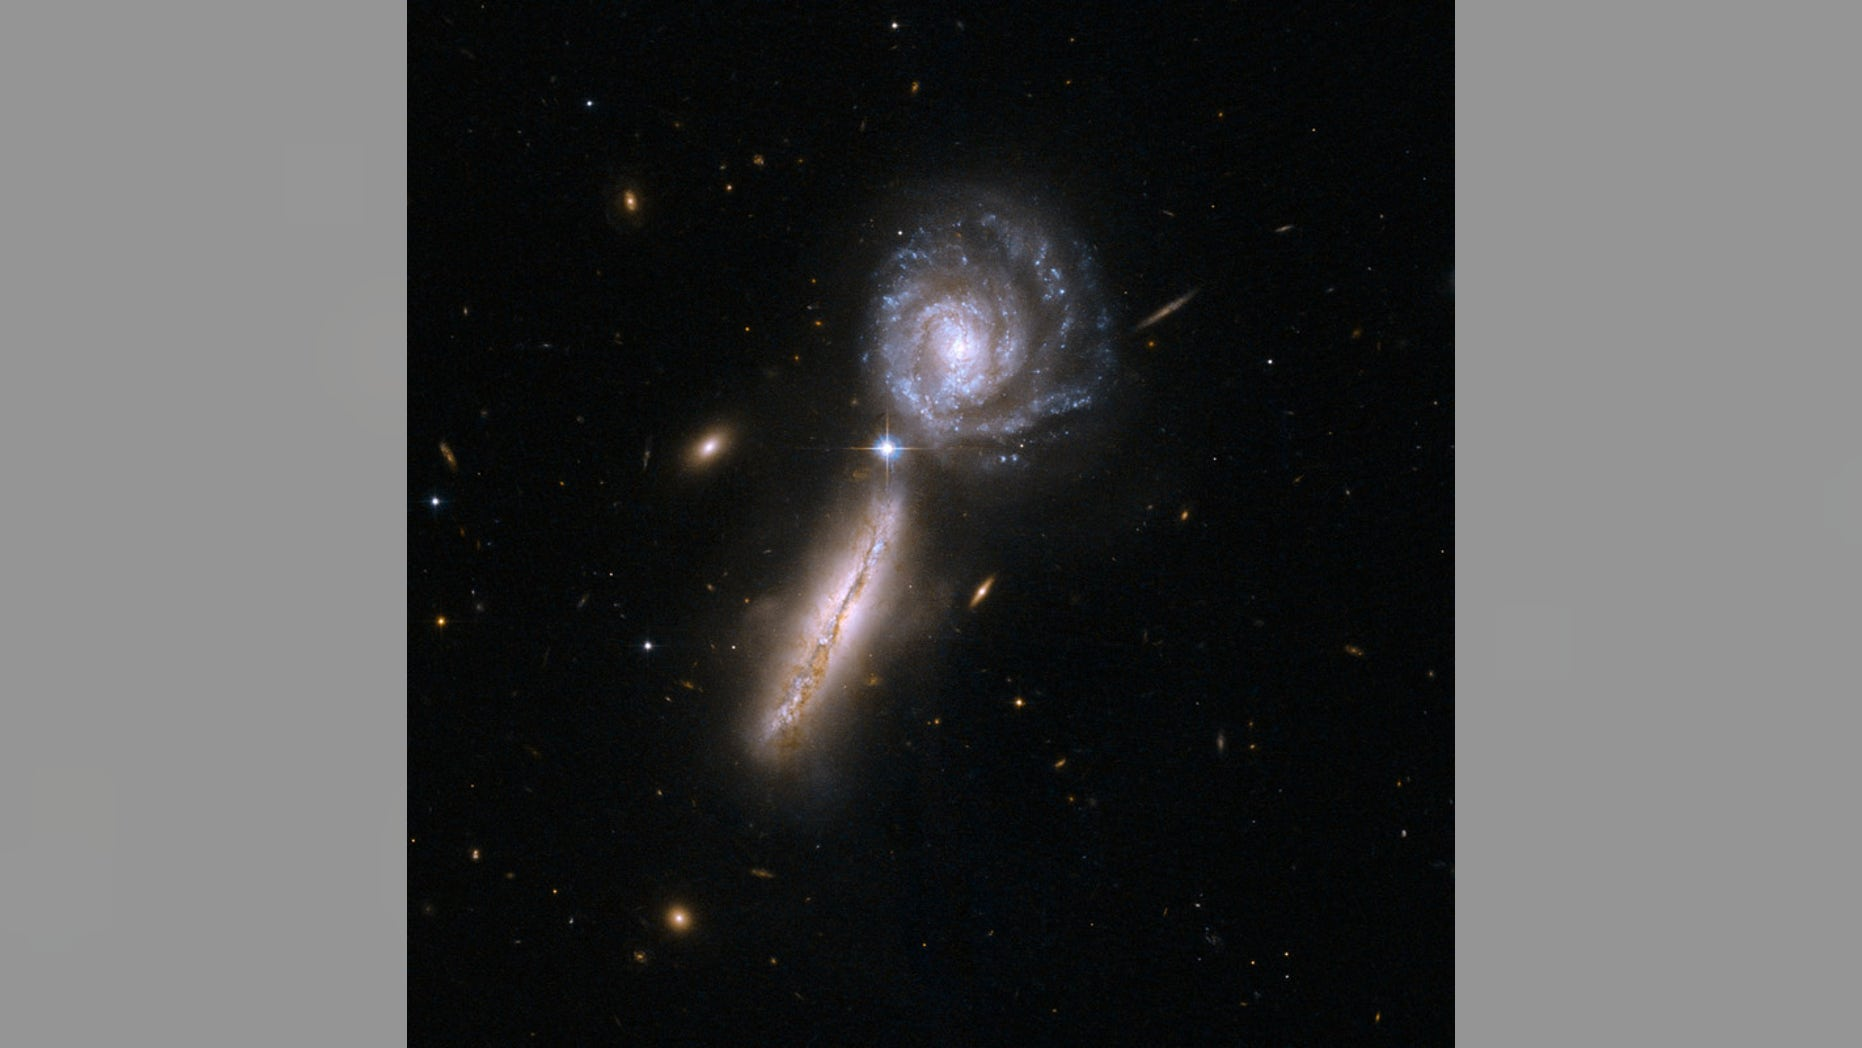 The spiral galaxies UGC 9618 and VV 340, which are about to collide. Astronomers believe such galaxy mergers also usually involve the merger of the supermassive black holes at galaxies' cores.